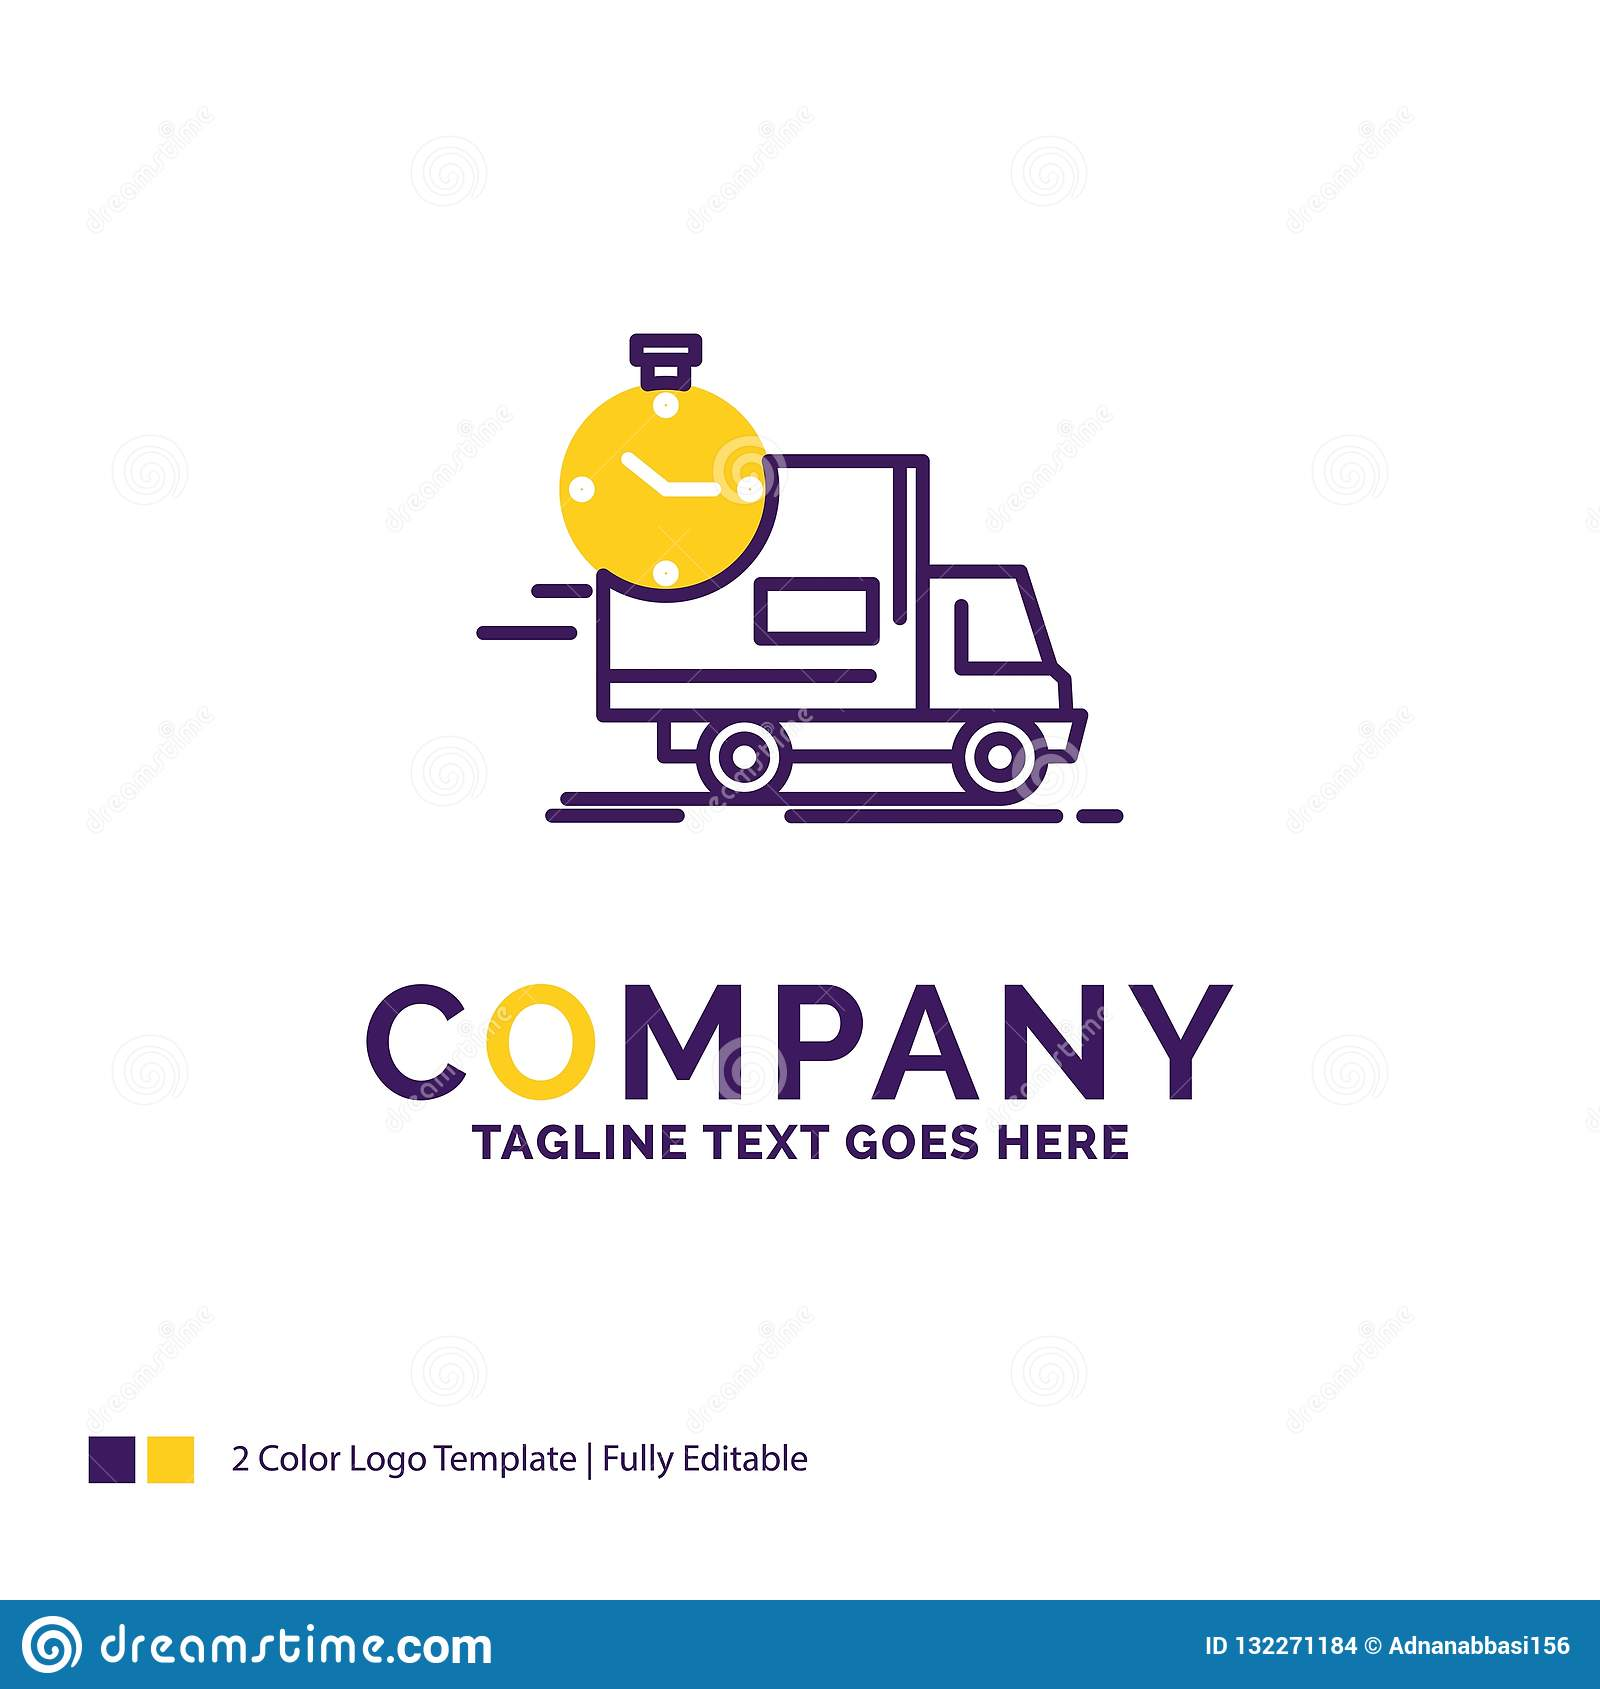 Company name logo design for delivery time shipping transport truck purple and yellow brand name design with place for tagline